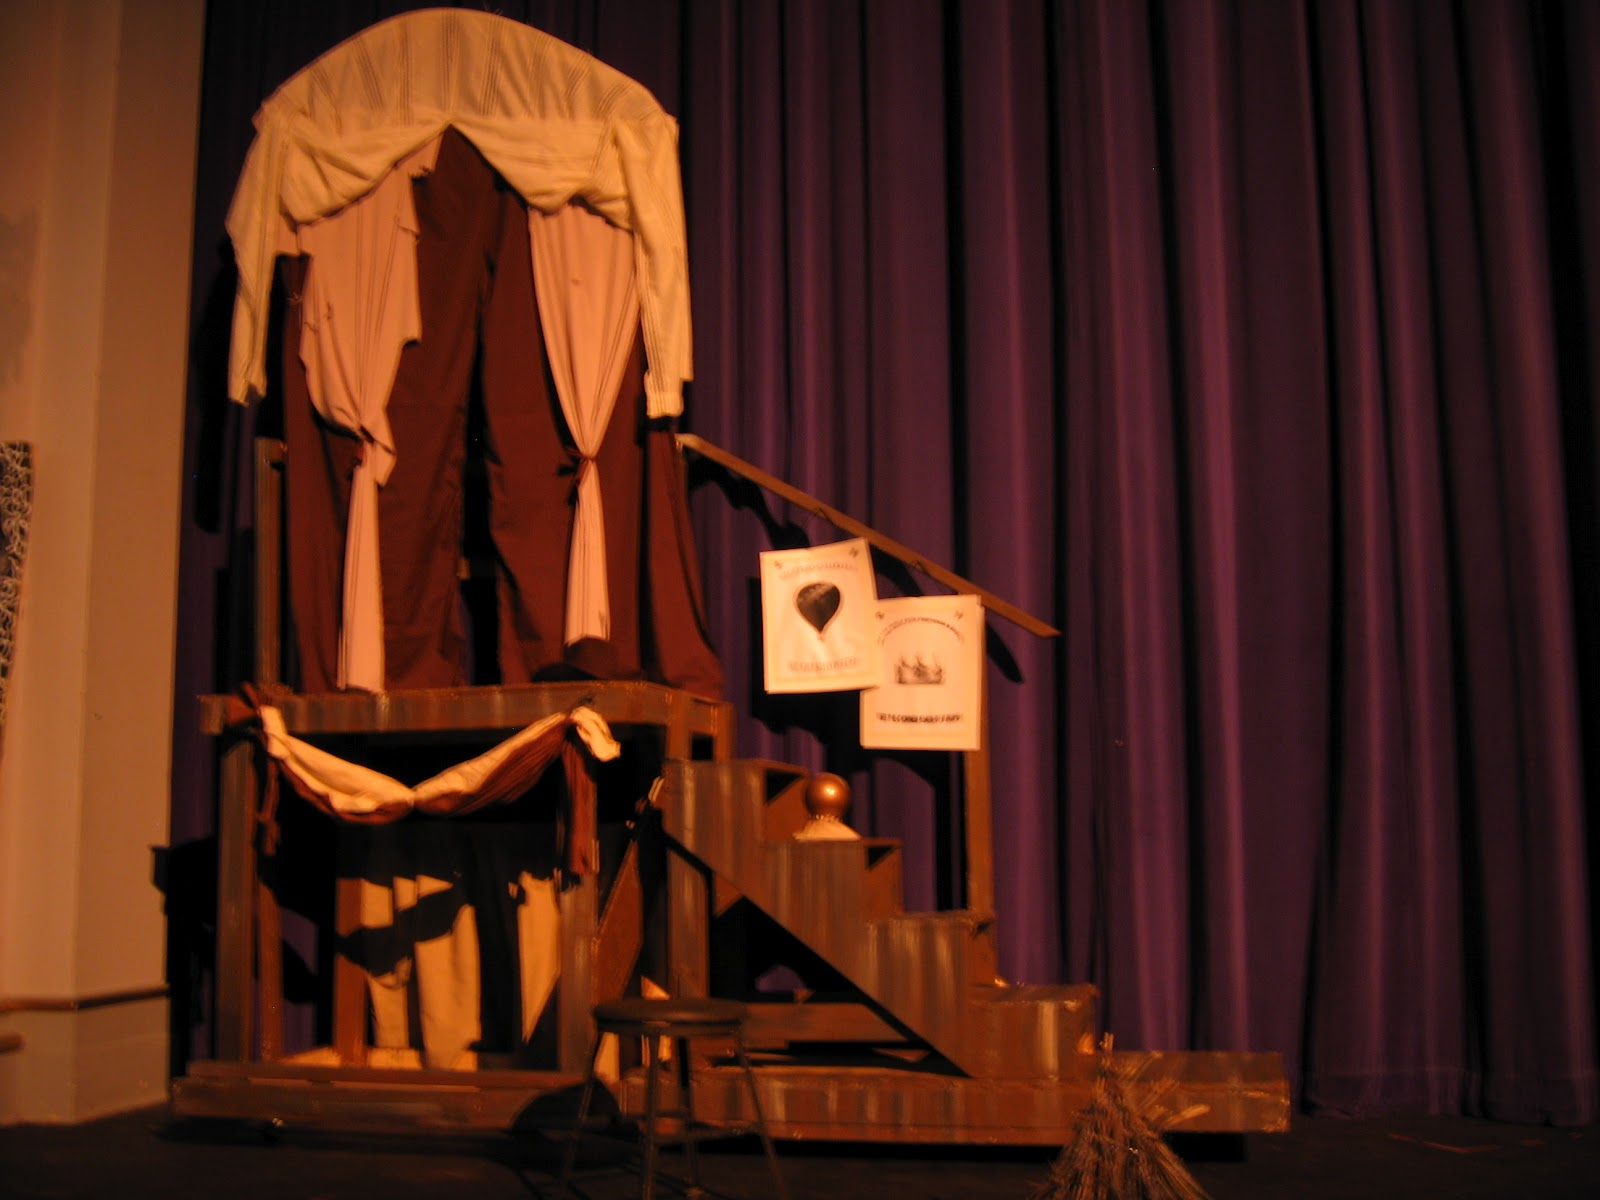 Starting In Reality A Farm Kansas Which We Designed Entirely Sepia Tones Browns And Tan Clothing Set Pieces Make Up Props To Give It The